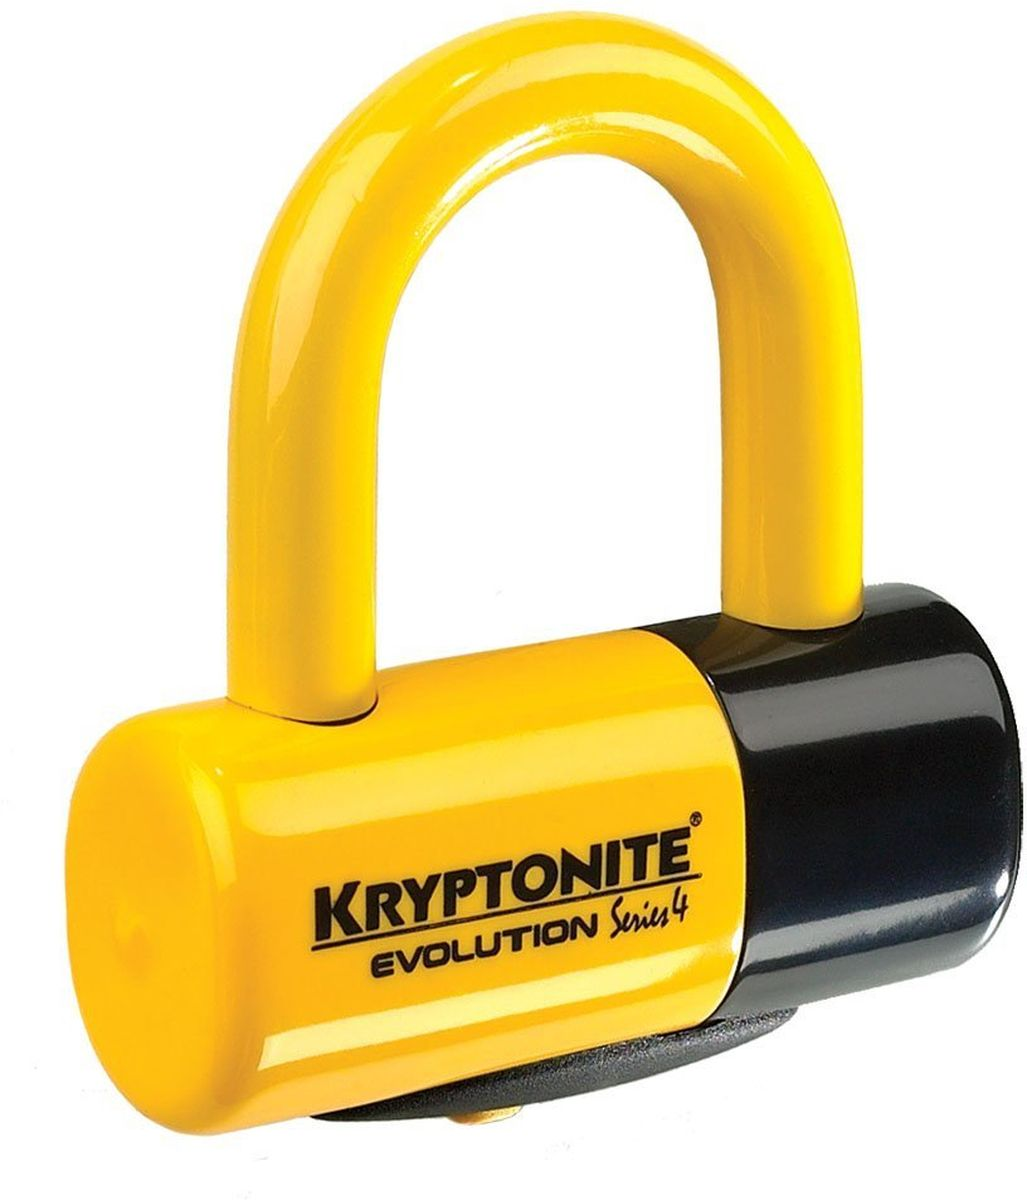 Замок велосипедный Kryptonite Disc Locks Evolution Series 4 Disc Lock, цвет: желтый, 4,8 х 5,4 см gold disc интернет магазин